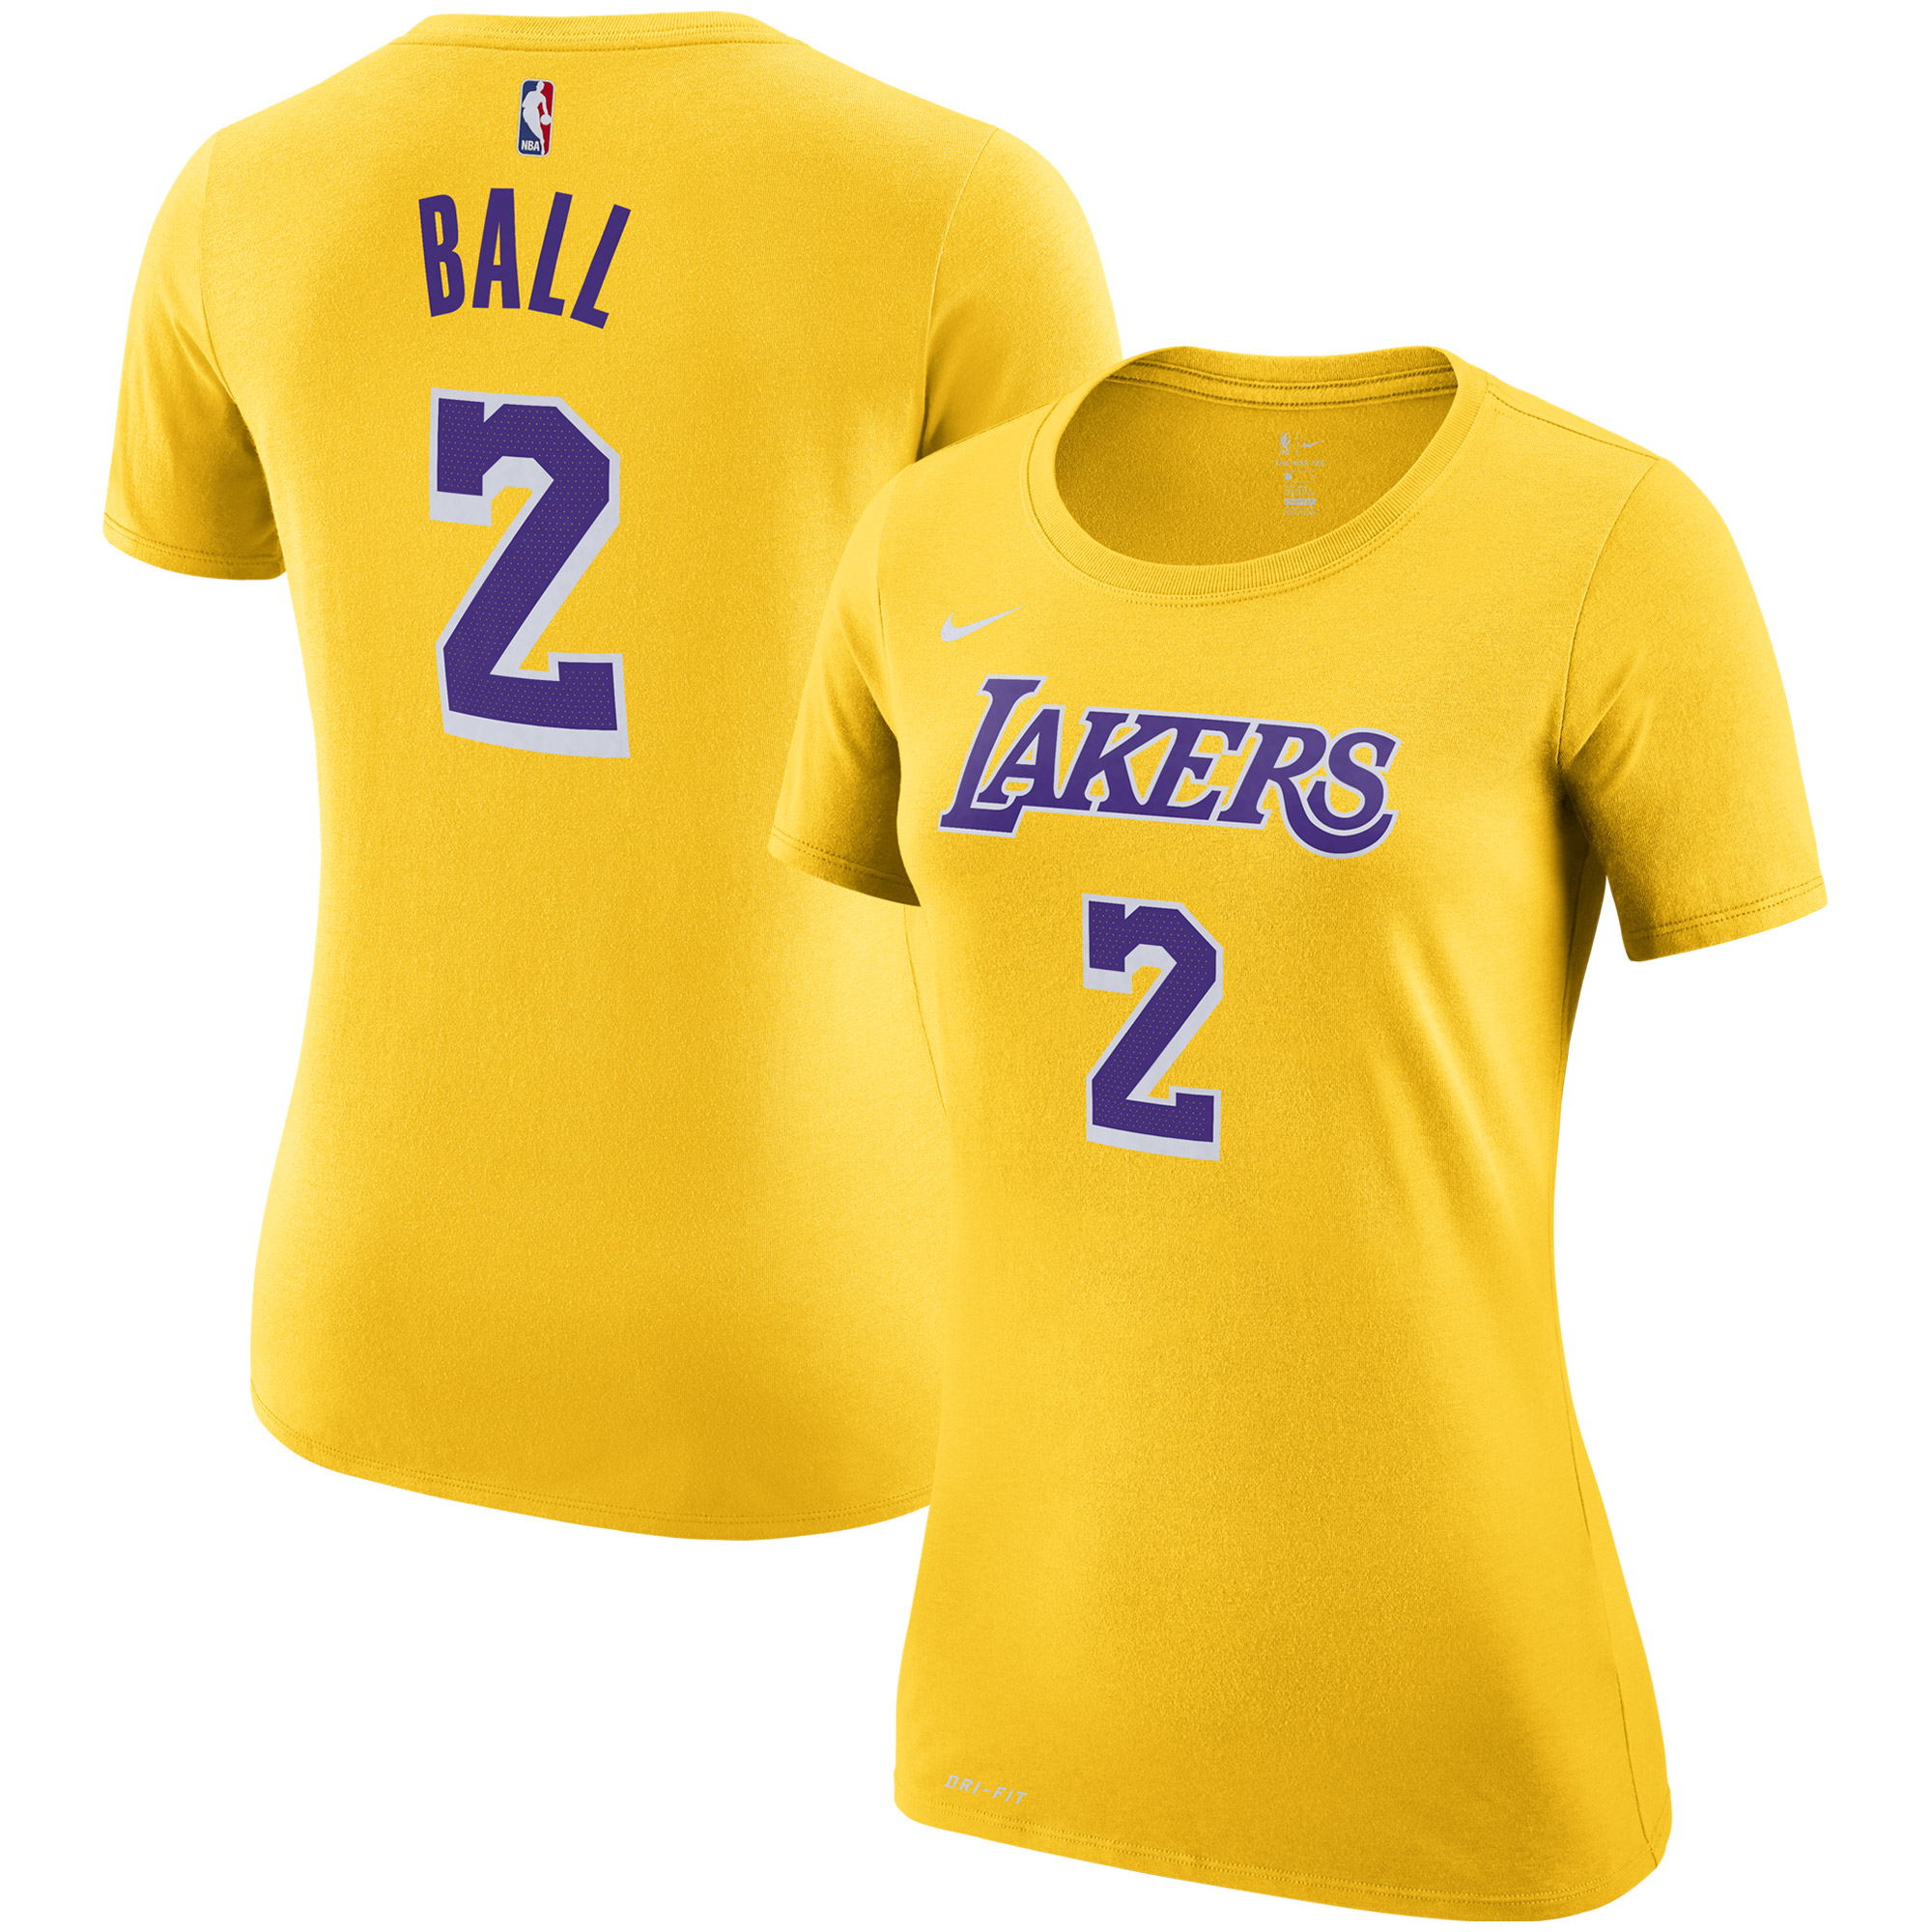 Lonzo Ball Los Angeles Lakers Nike Women's Name & Number Performance T-Shirt - Gold